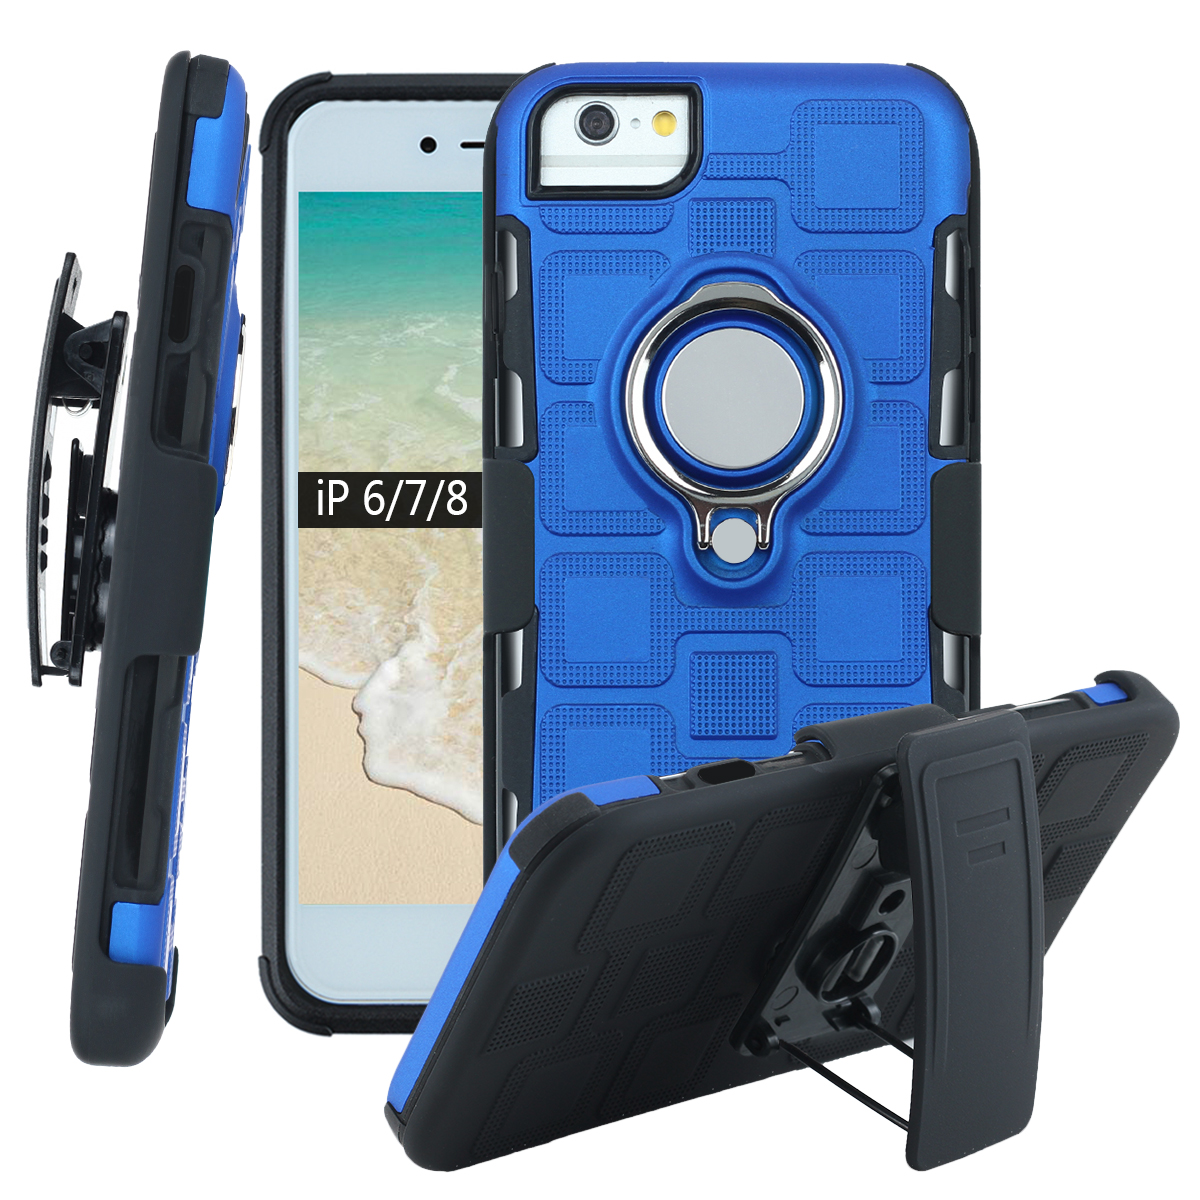 Belt Clip Holster Case For iPhone 6 6s 7 8 Plus Magnetic Car Mount for Men Shockproof Armor Cover iphone 6+ 7+ Stand Phone Case